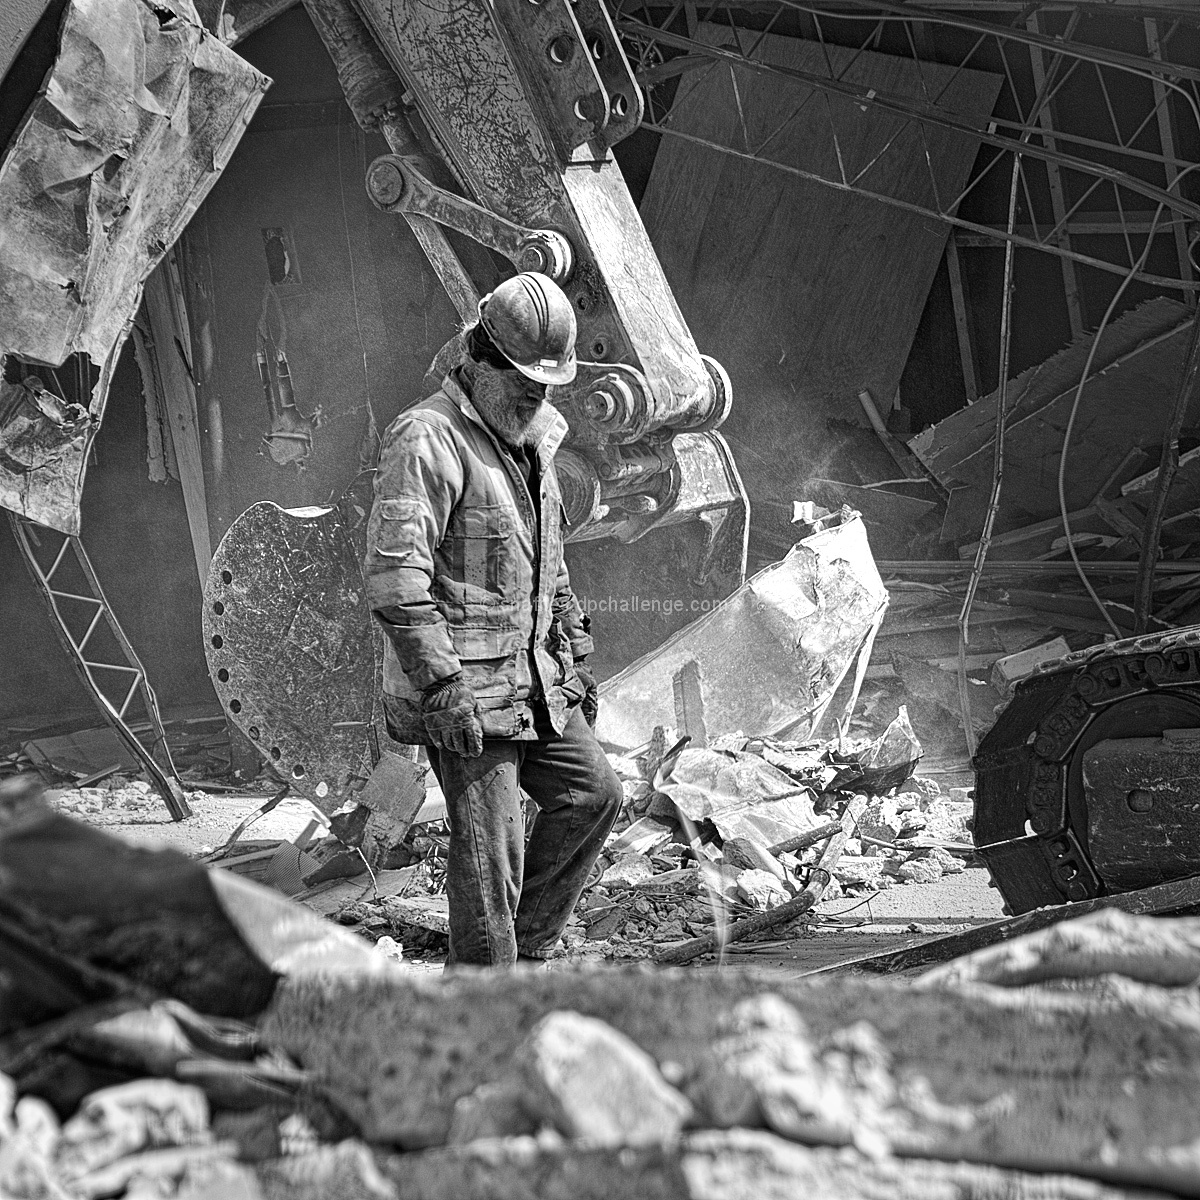 Finding God in the rubble